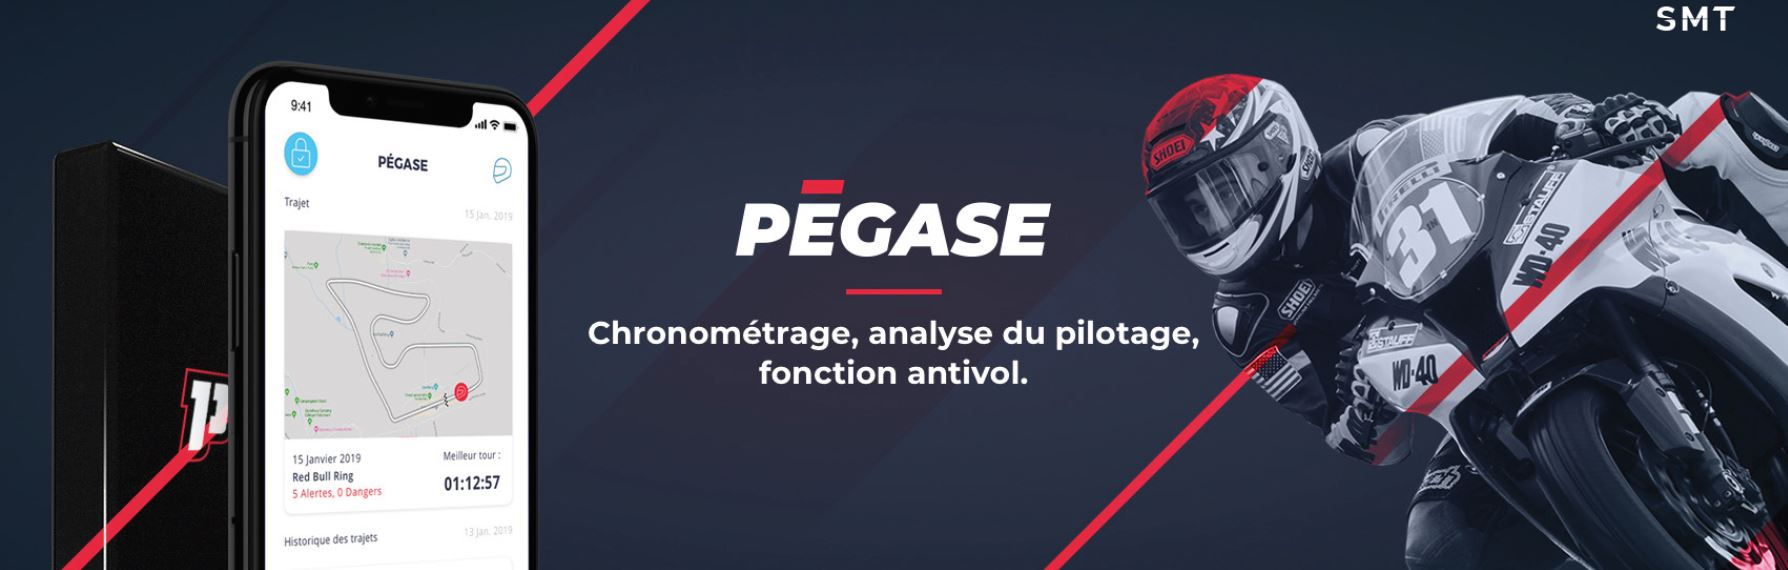 Pégase by SMT Performance